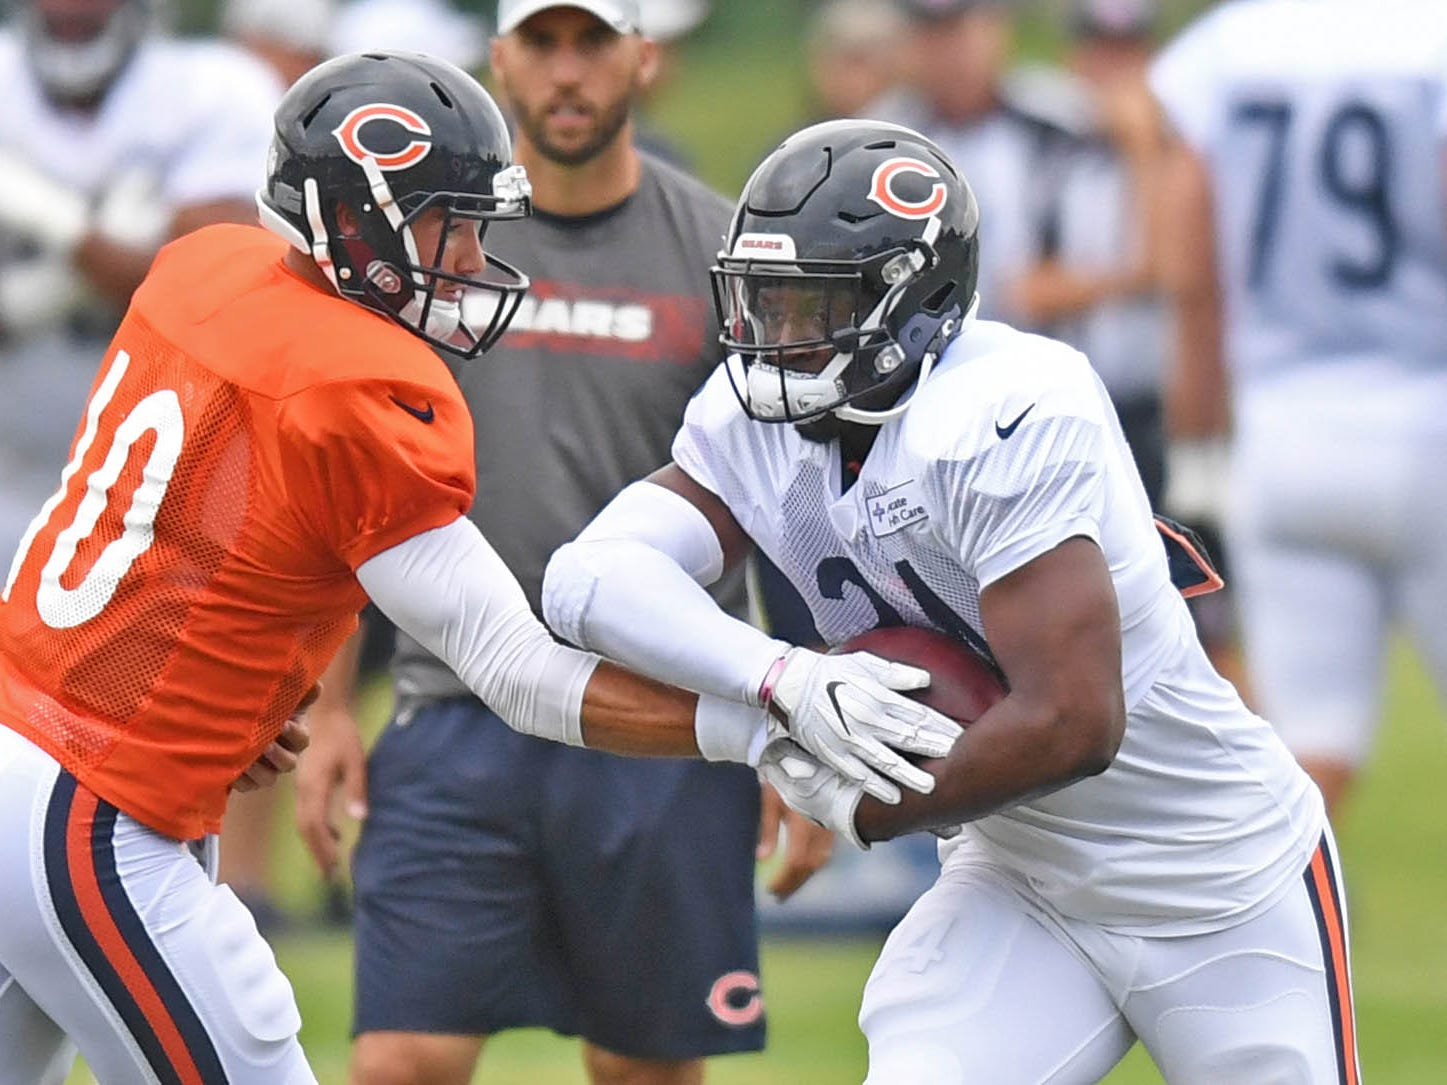 22. Bears (25): Jordan Howard doesn't move needle but may be main factor in Mitch Trubisky's arc. Only Elliott, Bell have more rushing yards since 2016.